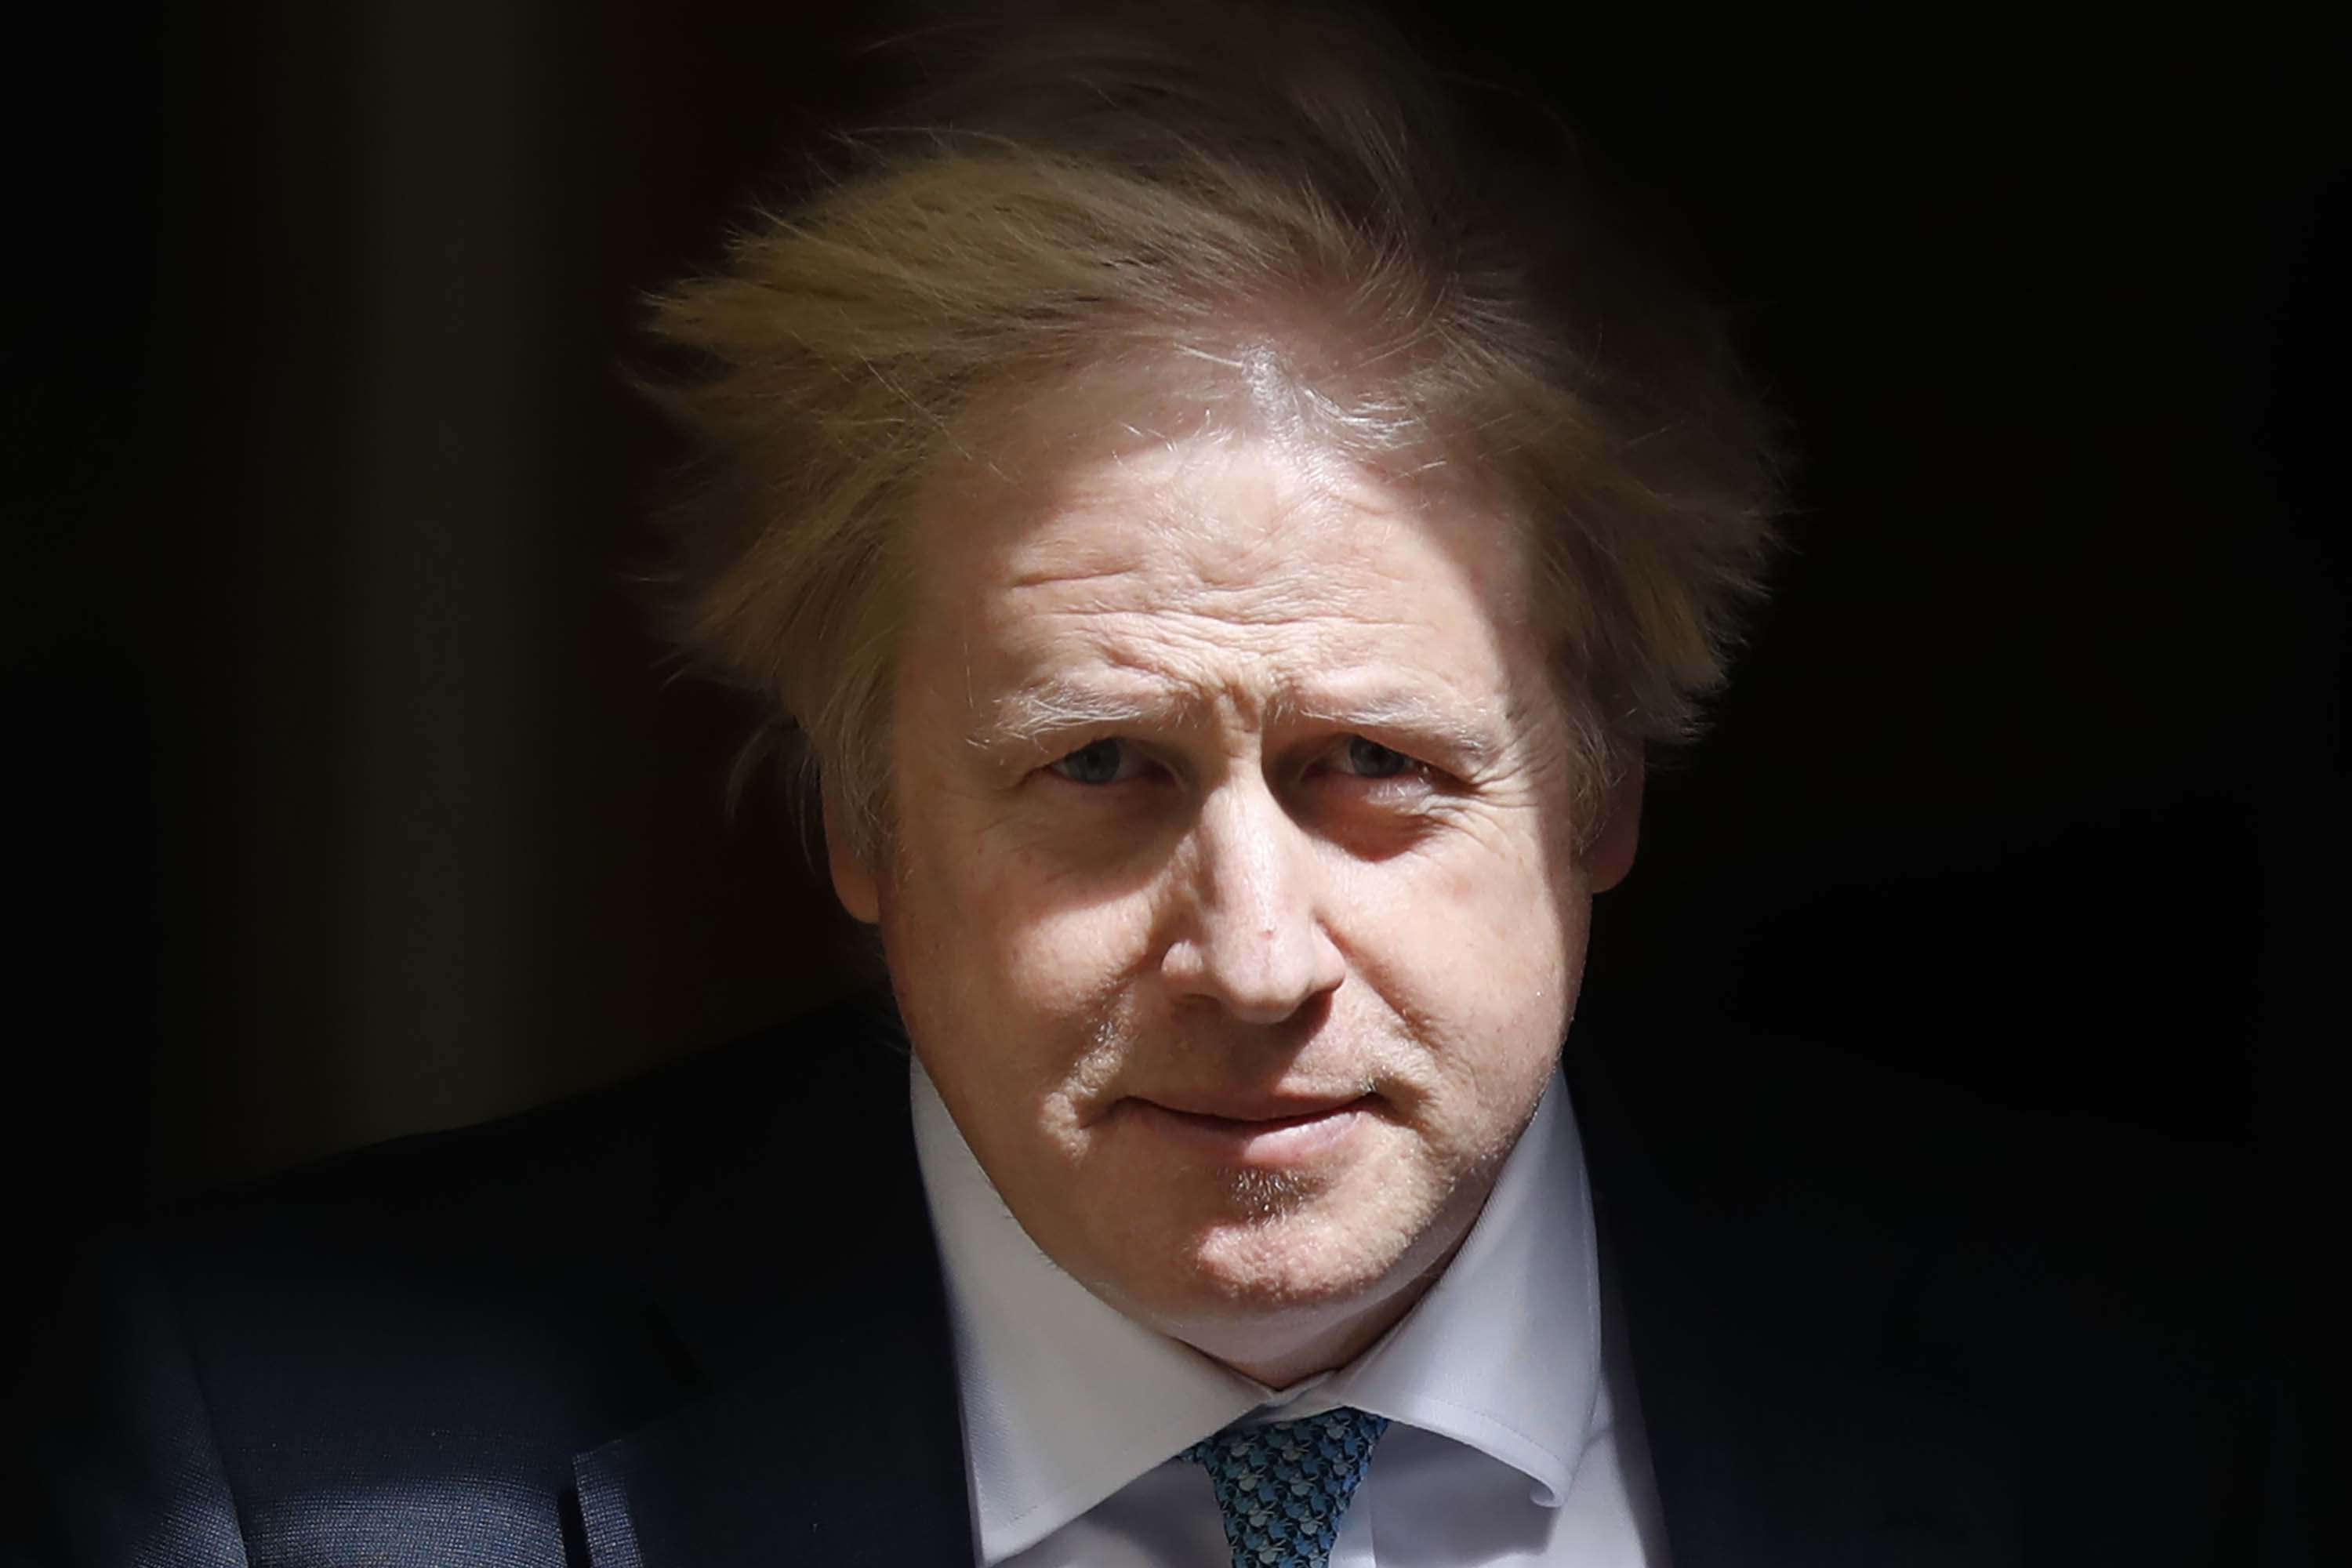 Britain's Prime Minister Boris Johnson leaves 10 Downing Street to attend Prime Minister's Questions in the Houses of Parliament on May 13 in London.